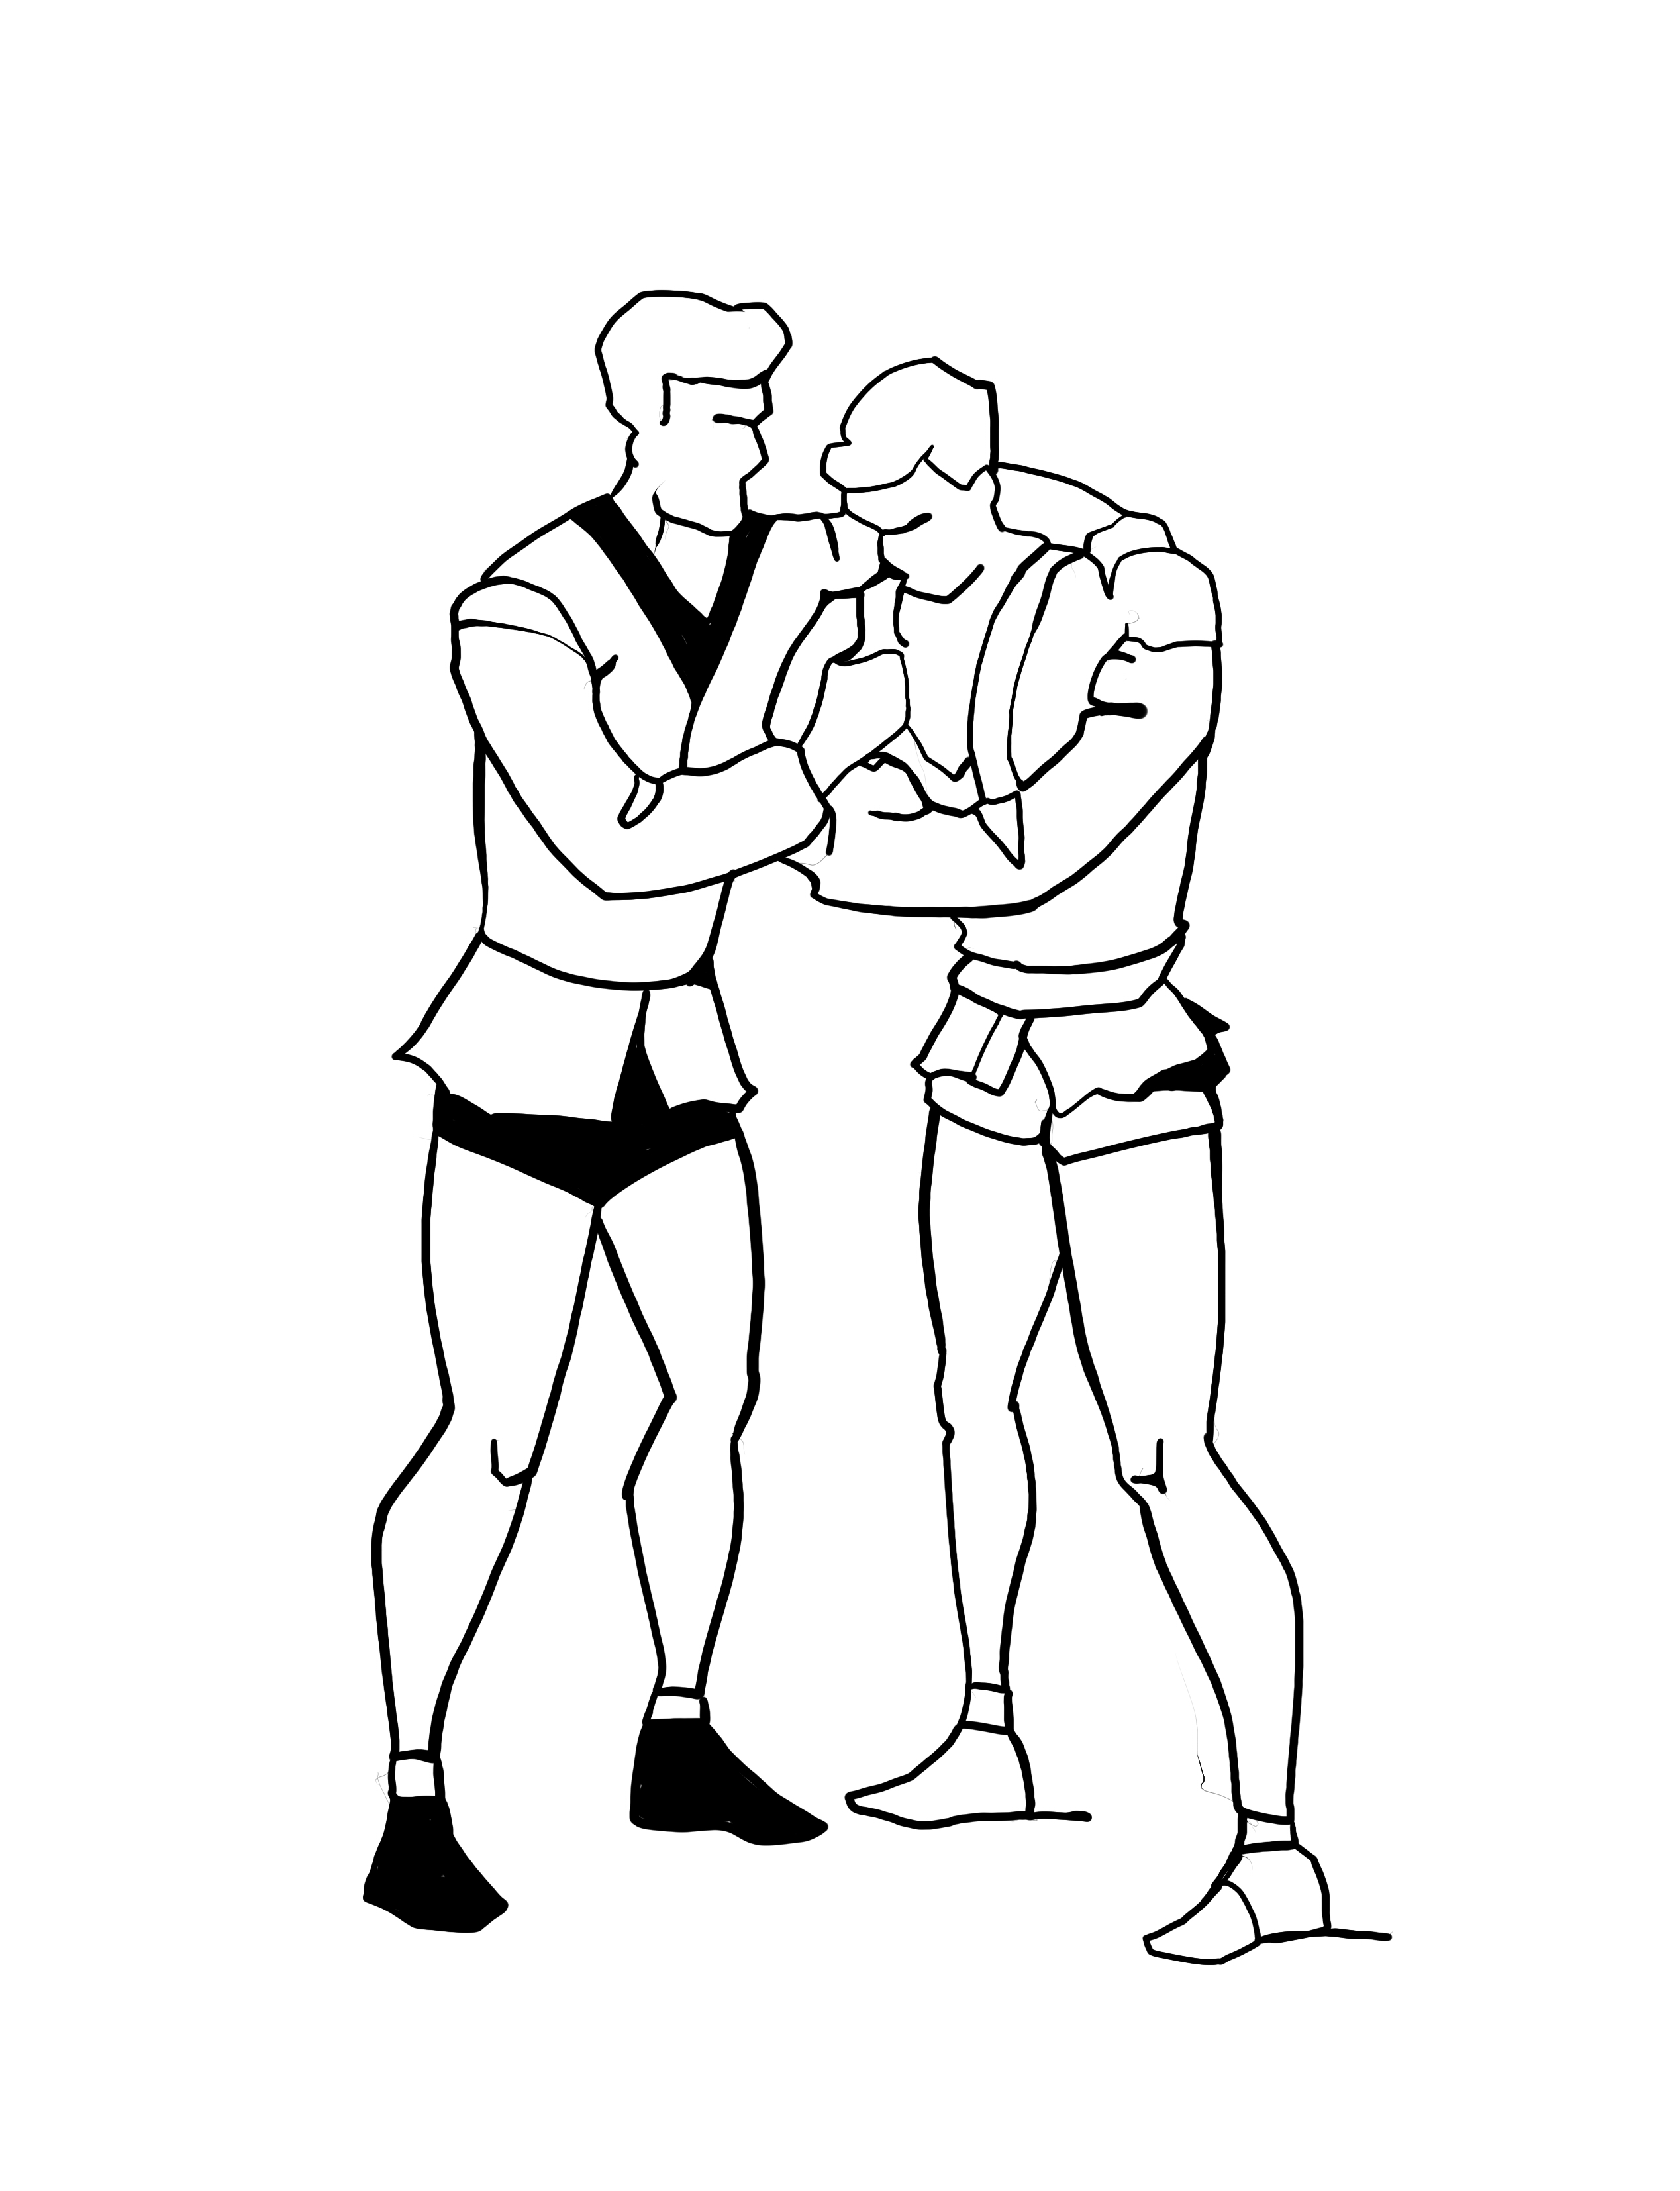 2537x3308 Unsymmetrical Grips In Judo, Sambo And Bjj Sherdog Forums Ufc